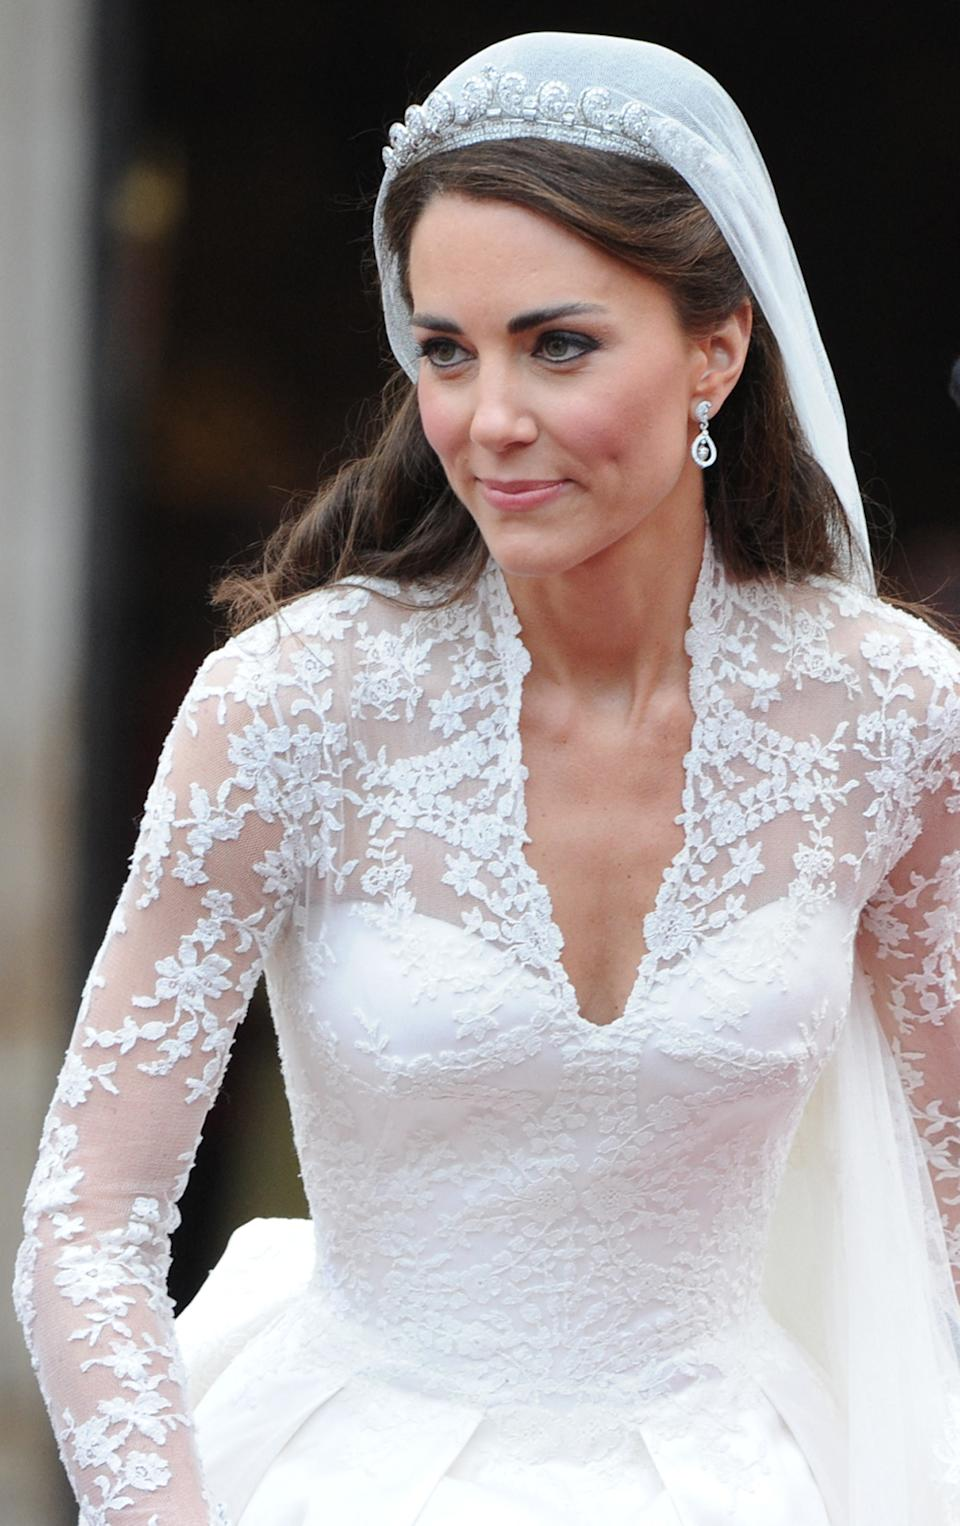 Kate, Duchess of Cambridge, comes out of Westminster Abbey, with her husband Britain's Prince William (not pictured) following their wedding ceremony, in central London, on April 29, 2011. AFP PHOTO / CARL DE SOUZA (Photo by Carl DE SOUZA / AFP) (Photo by CARL DE SOUZA/AFP via Getty Images)